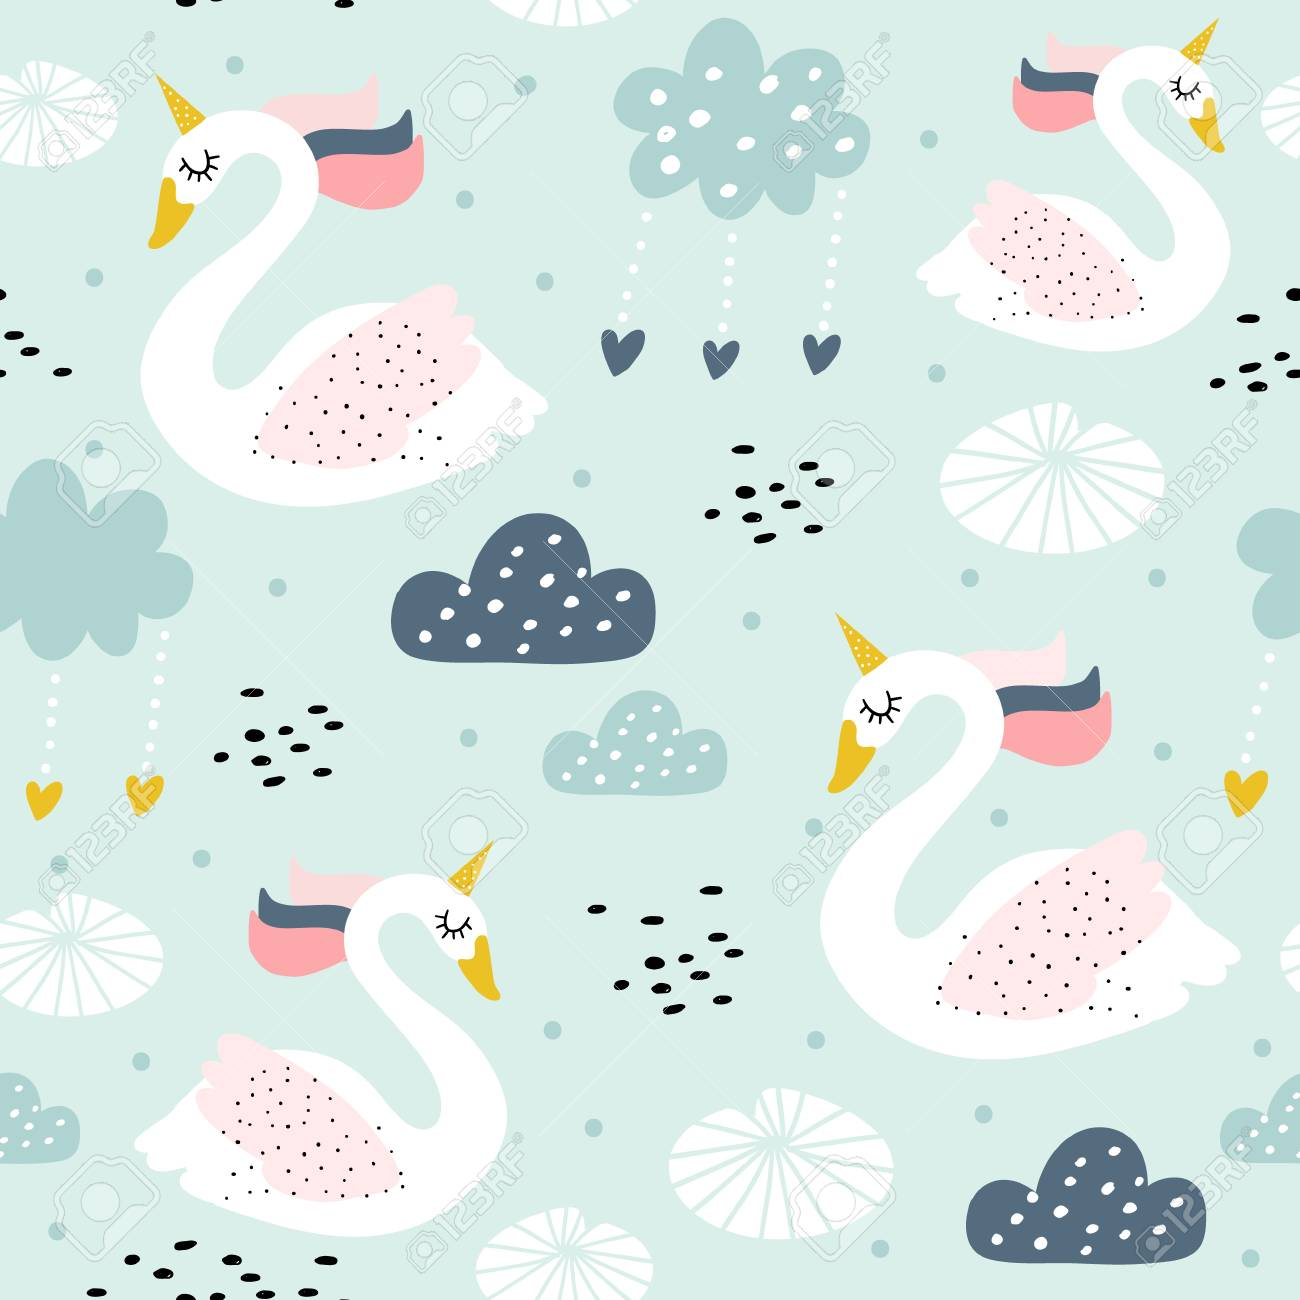 Seamless childish pattern with swan unicorn. Creative nursery texture. Perfect for kids design, fabric, wrapping, wallpaper, textile, apparel - 111672409